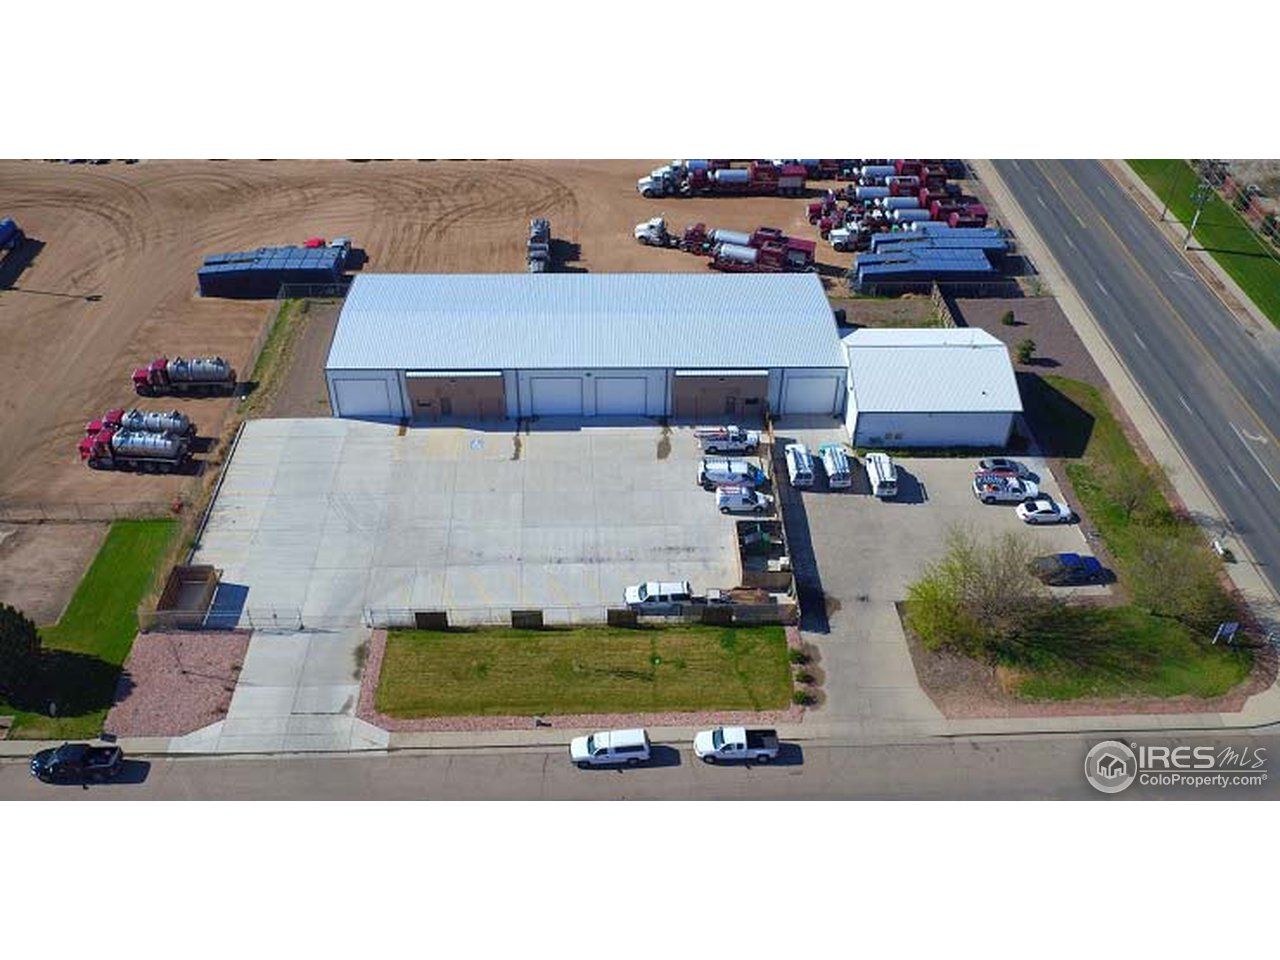 Property Photo for 112 E 30th St, Greeley, CO 80631, MLS # 852903